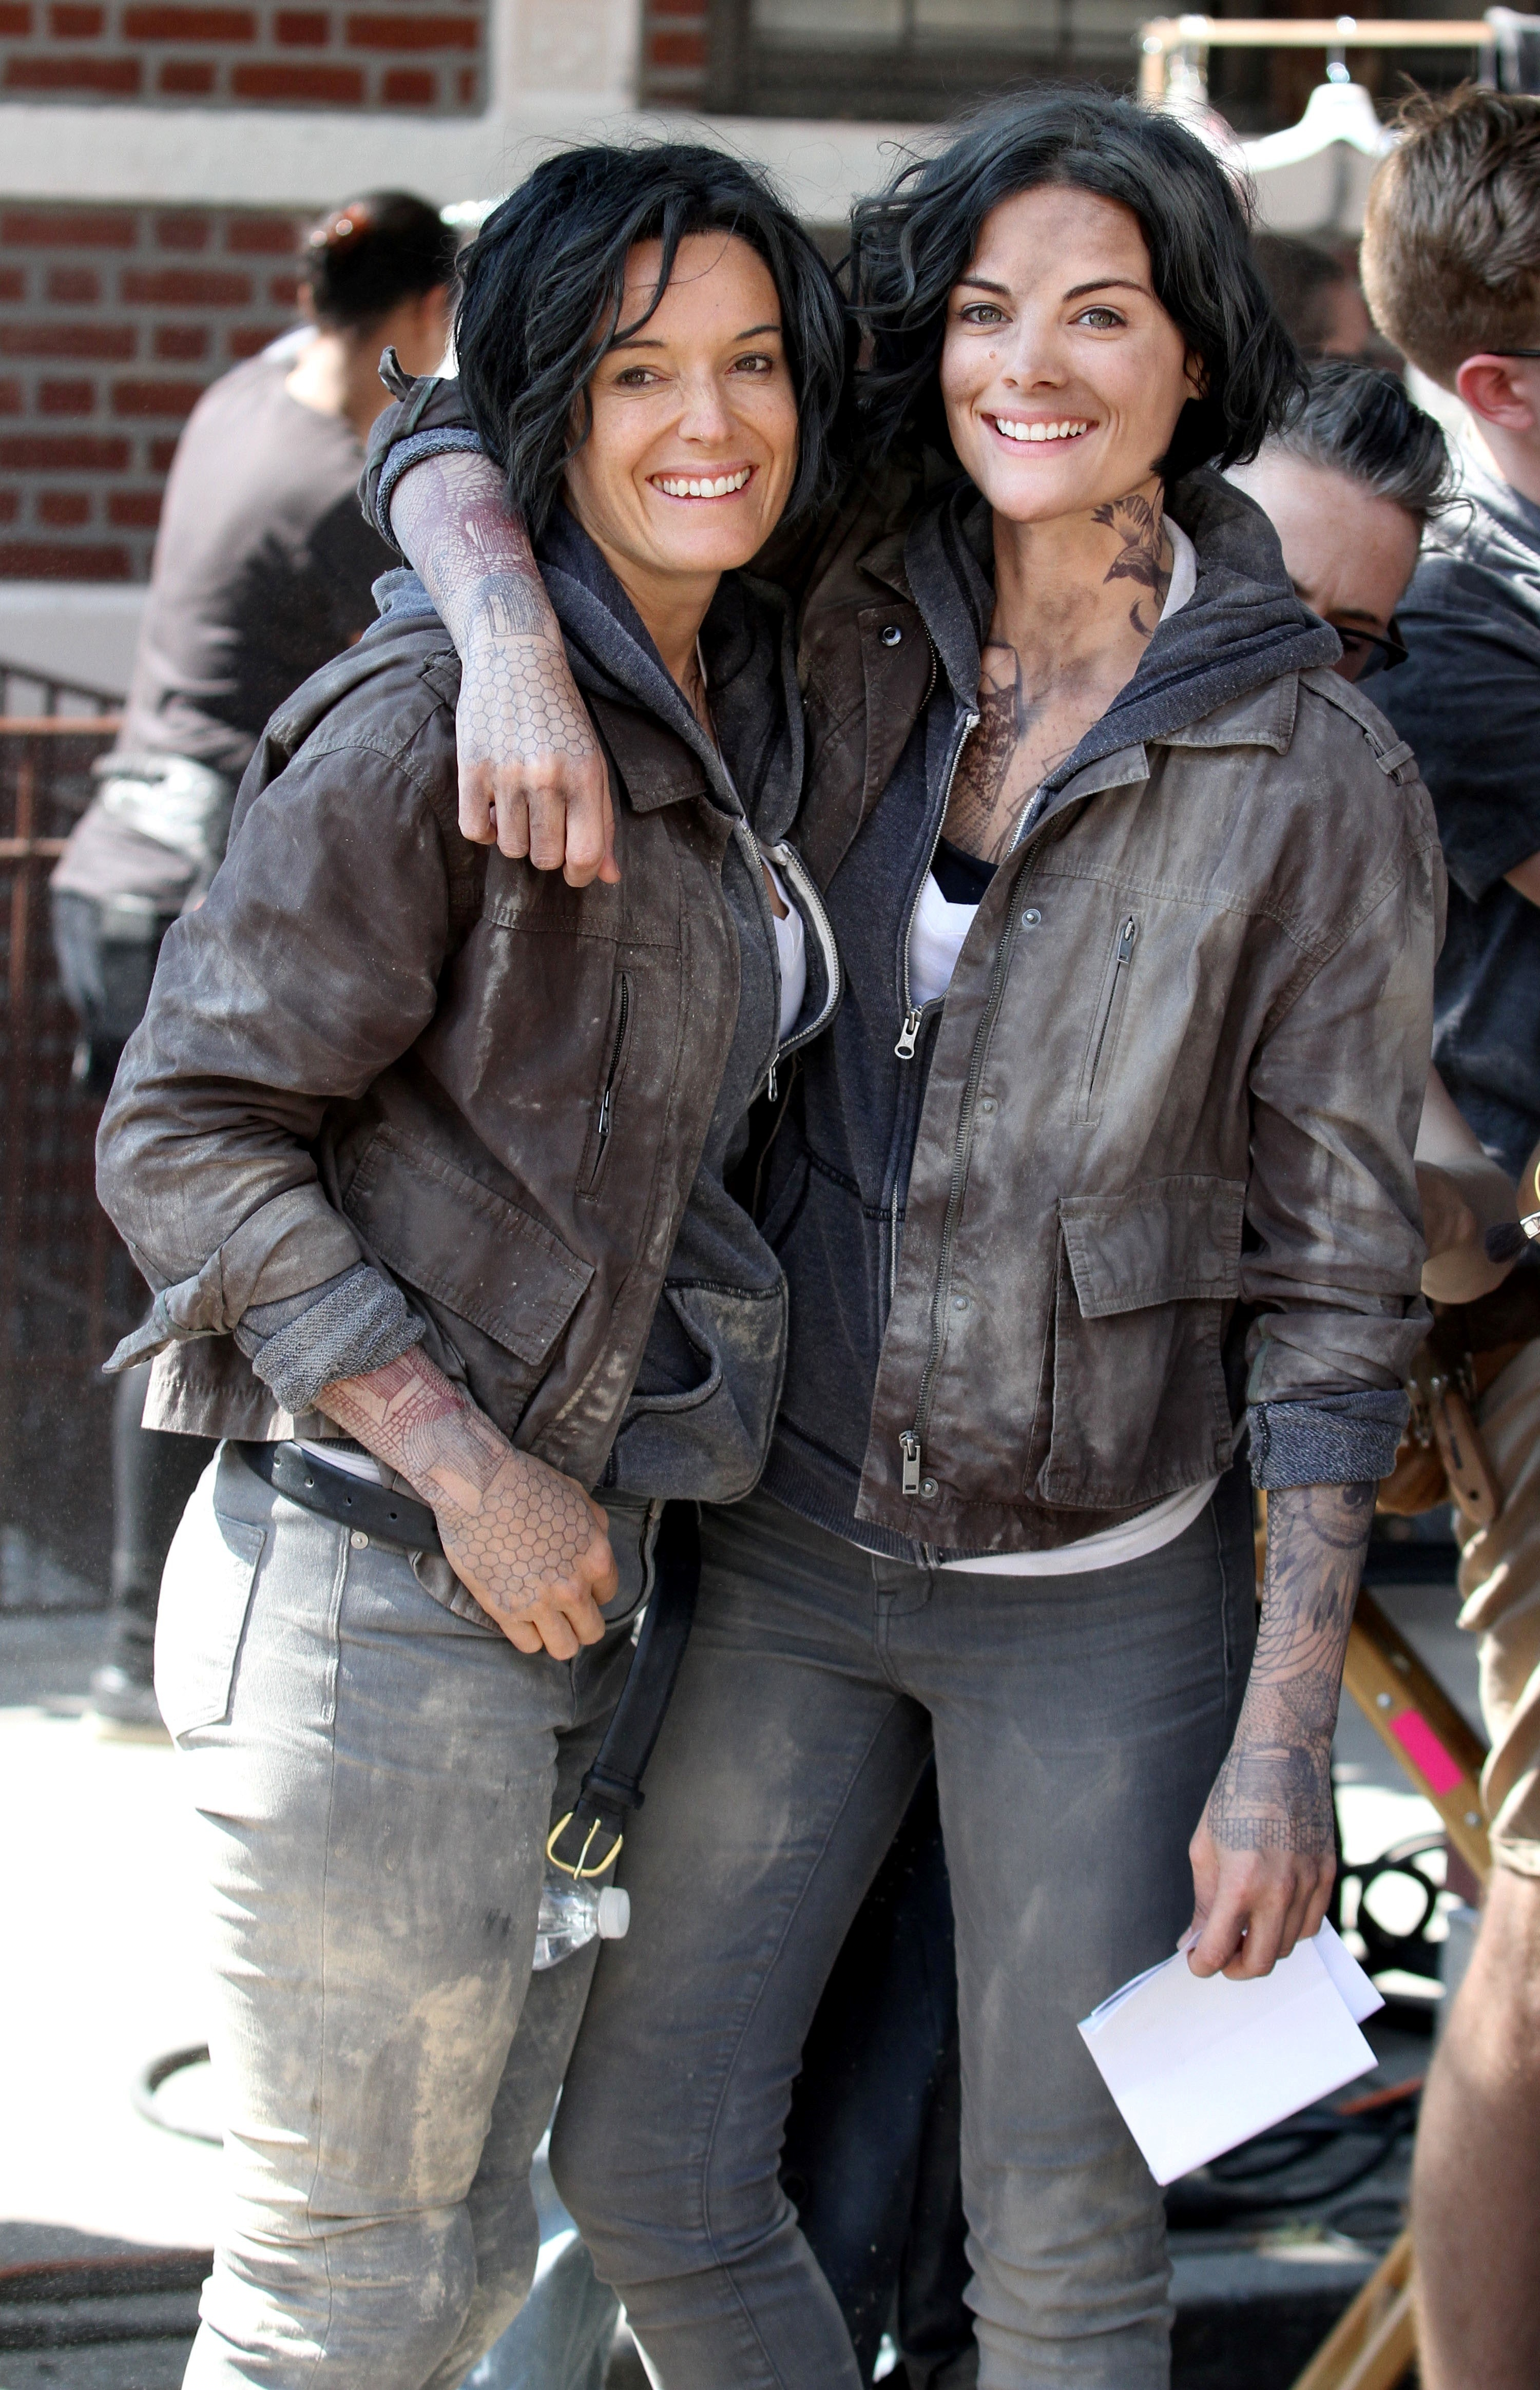 Jaimie Alexander and her stunt double smiling for a photo